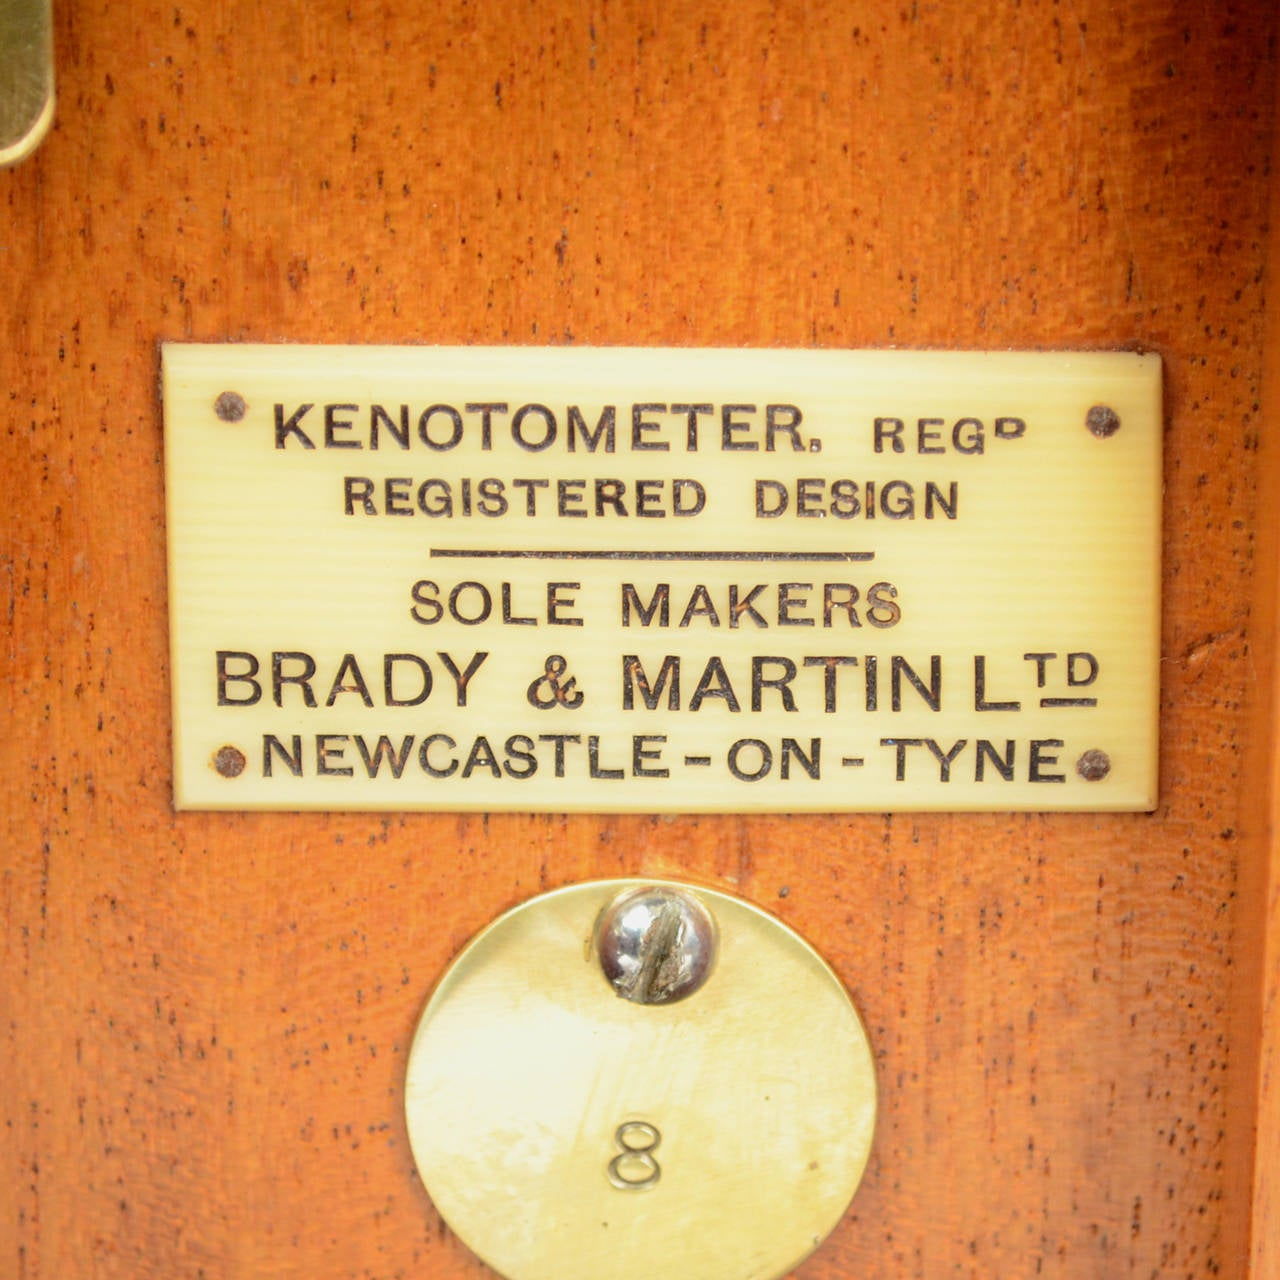 letter of request letter kenotometer signed brady and martin ltd newcastle on tyne 10202